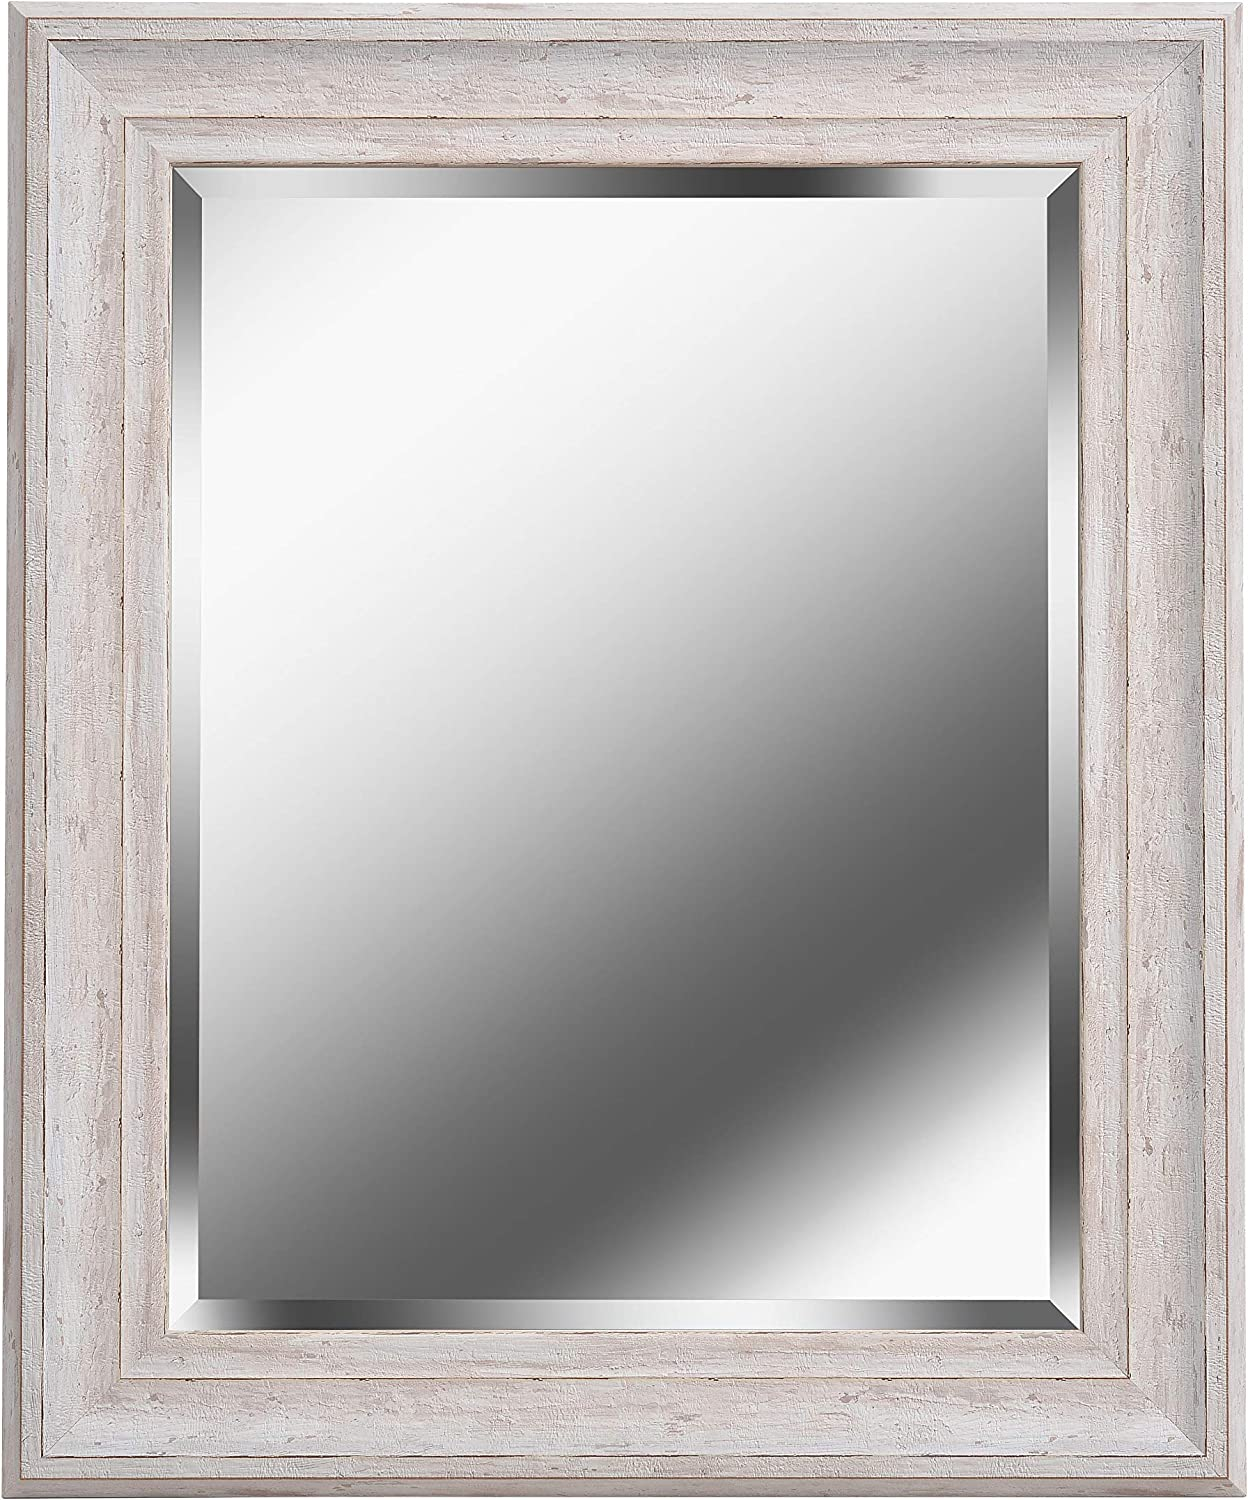 Kenroy Home 60352 Warren Home Décor, Wall 35 x 29 Inch, Distressed White Wood Finish